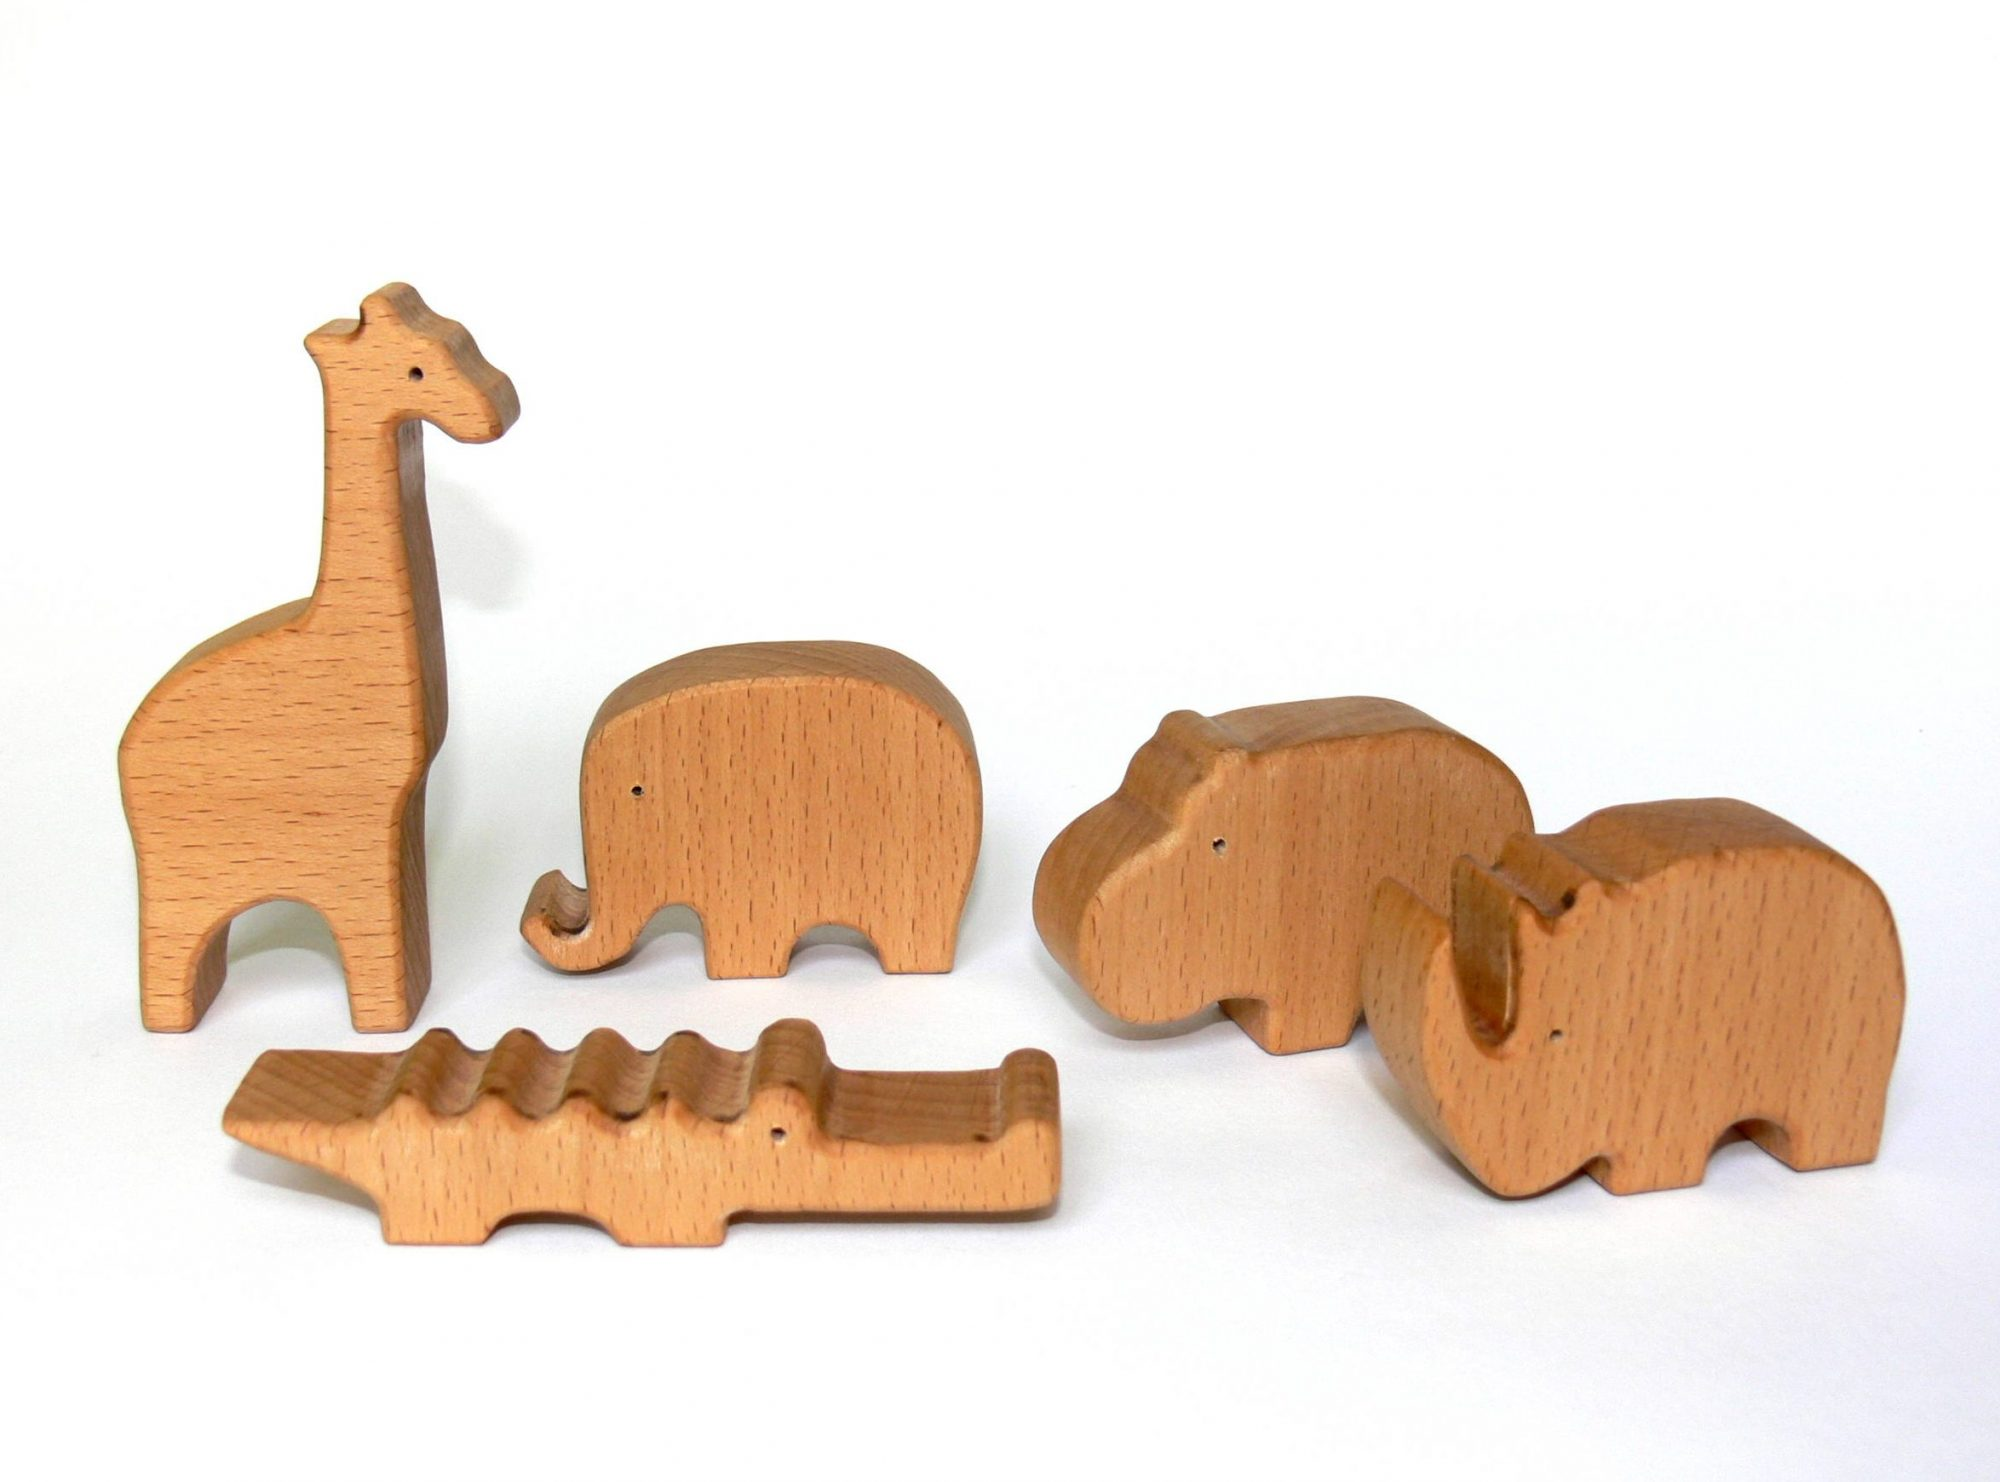 Baby African animals Wooden Toy Set | Eco friendly handmade wooden toys by  Botanica Works